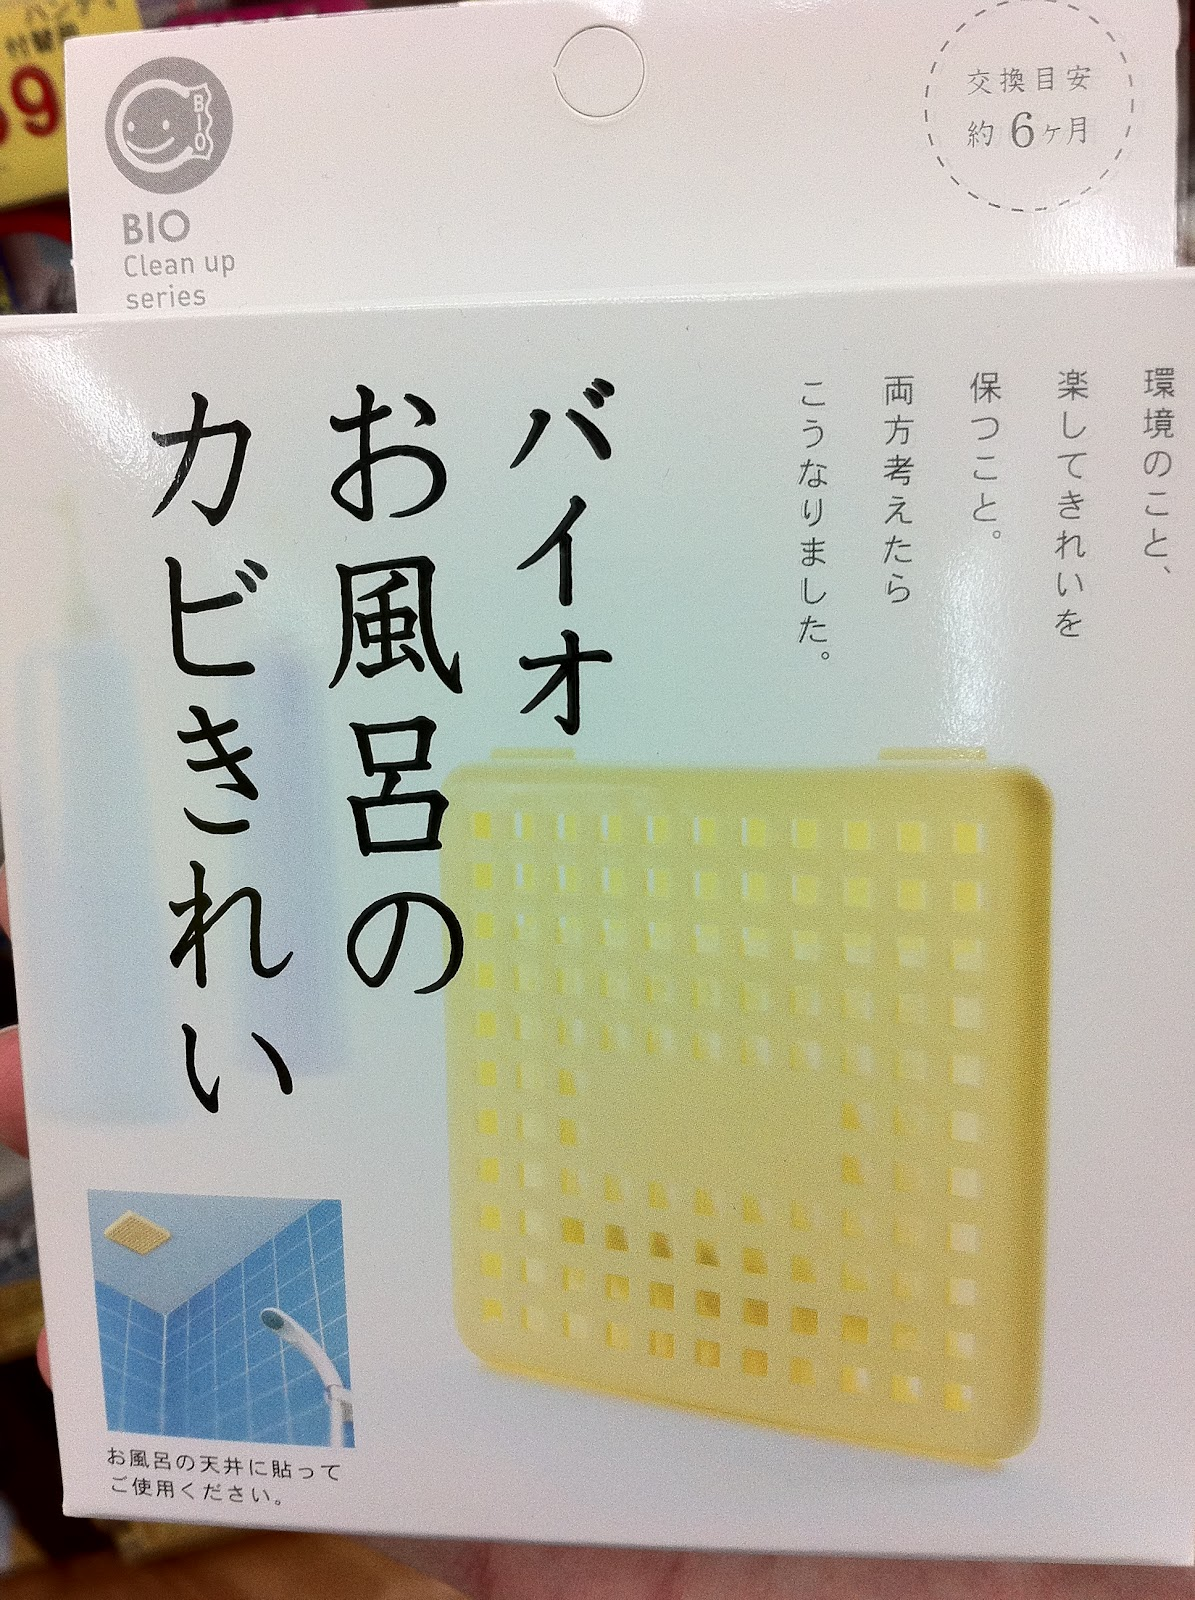 Bathroom ceiling mold - Bio Cleaner Japan Mold Cleaning Bathroom